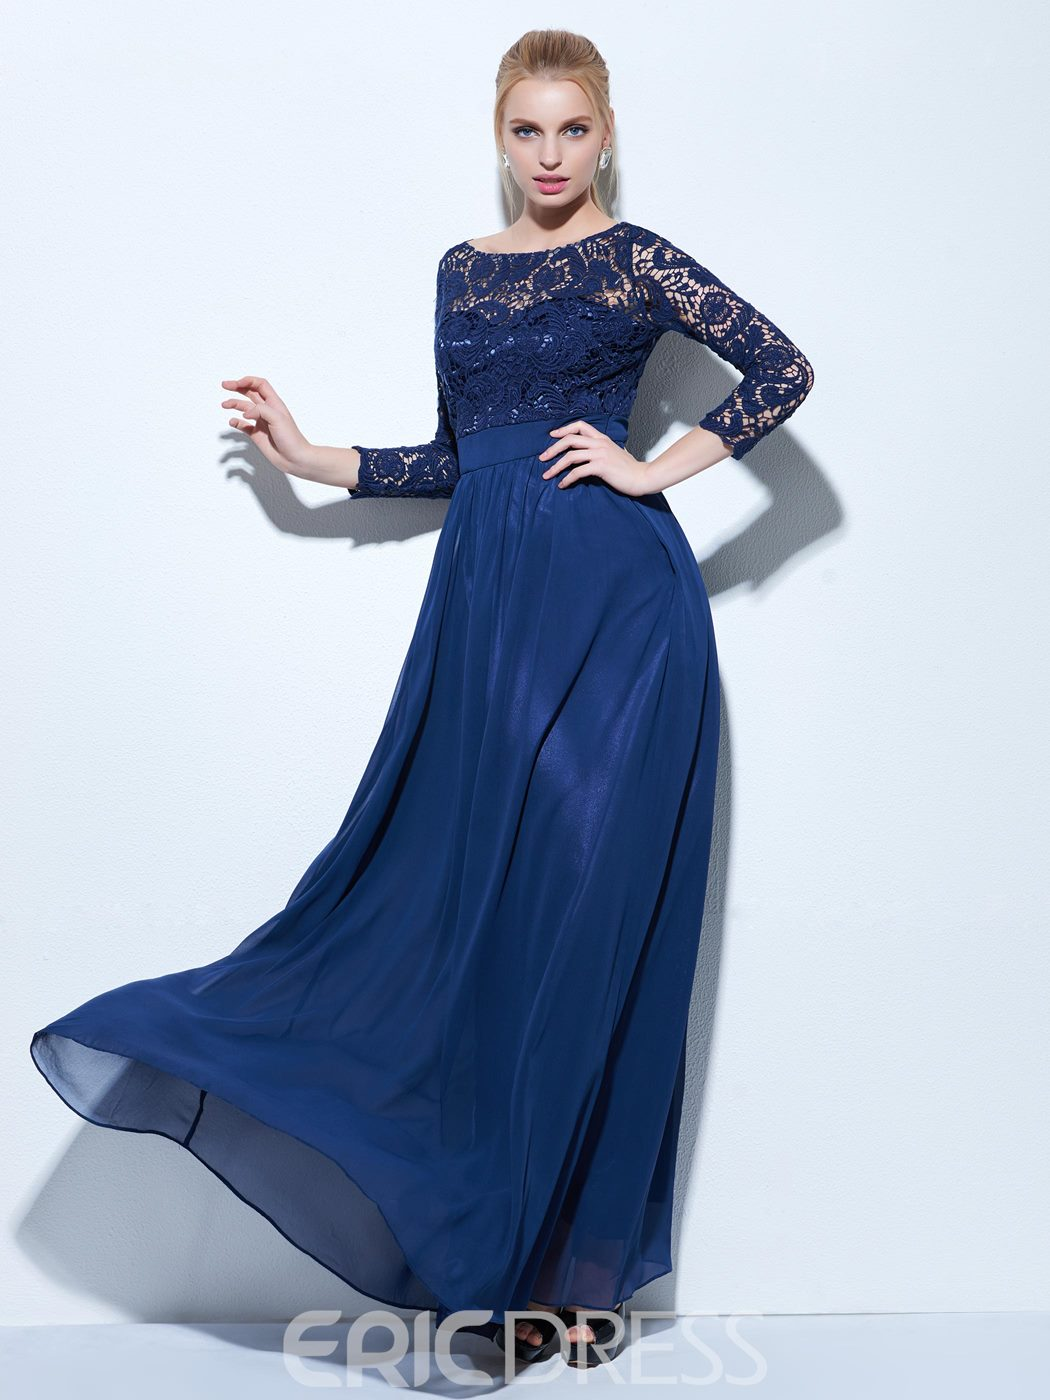 Ericdress A-Line Bateau 3/4 Sleeves Lace Evening Dress In Floor-Length